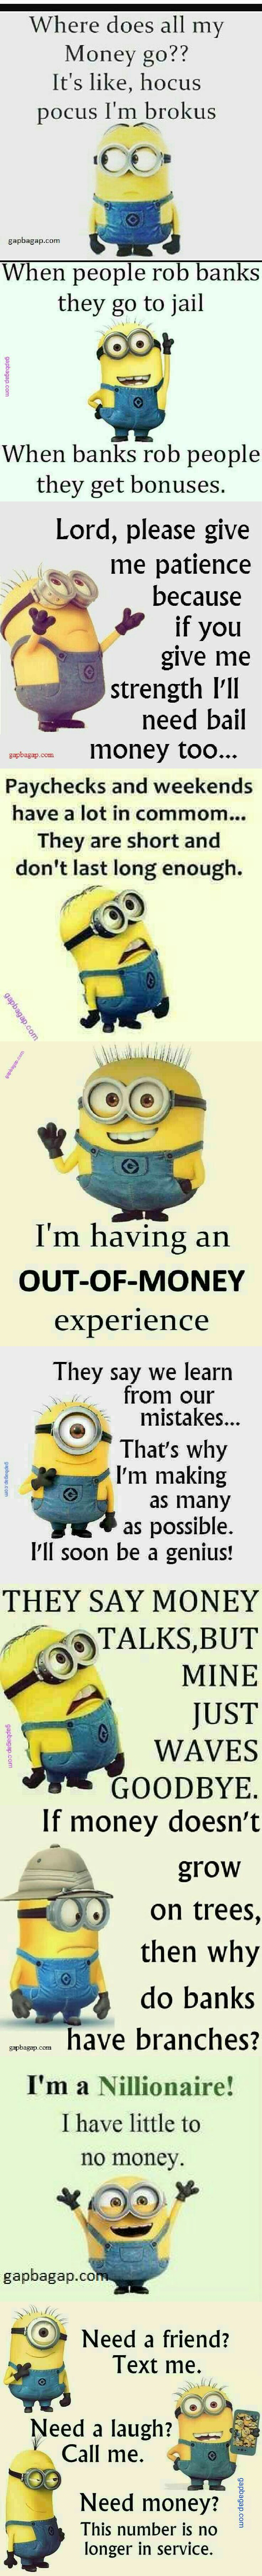 Top 10 Funny Memes About Money By The Minions